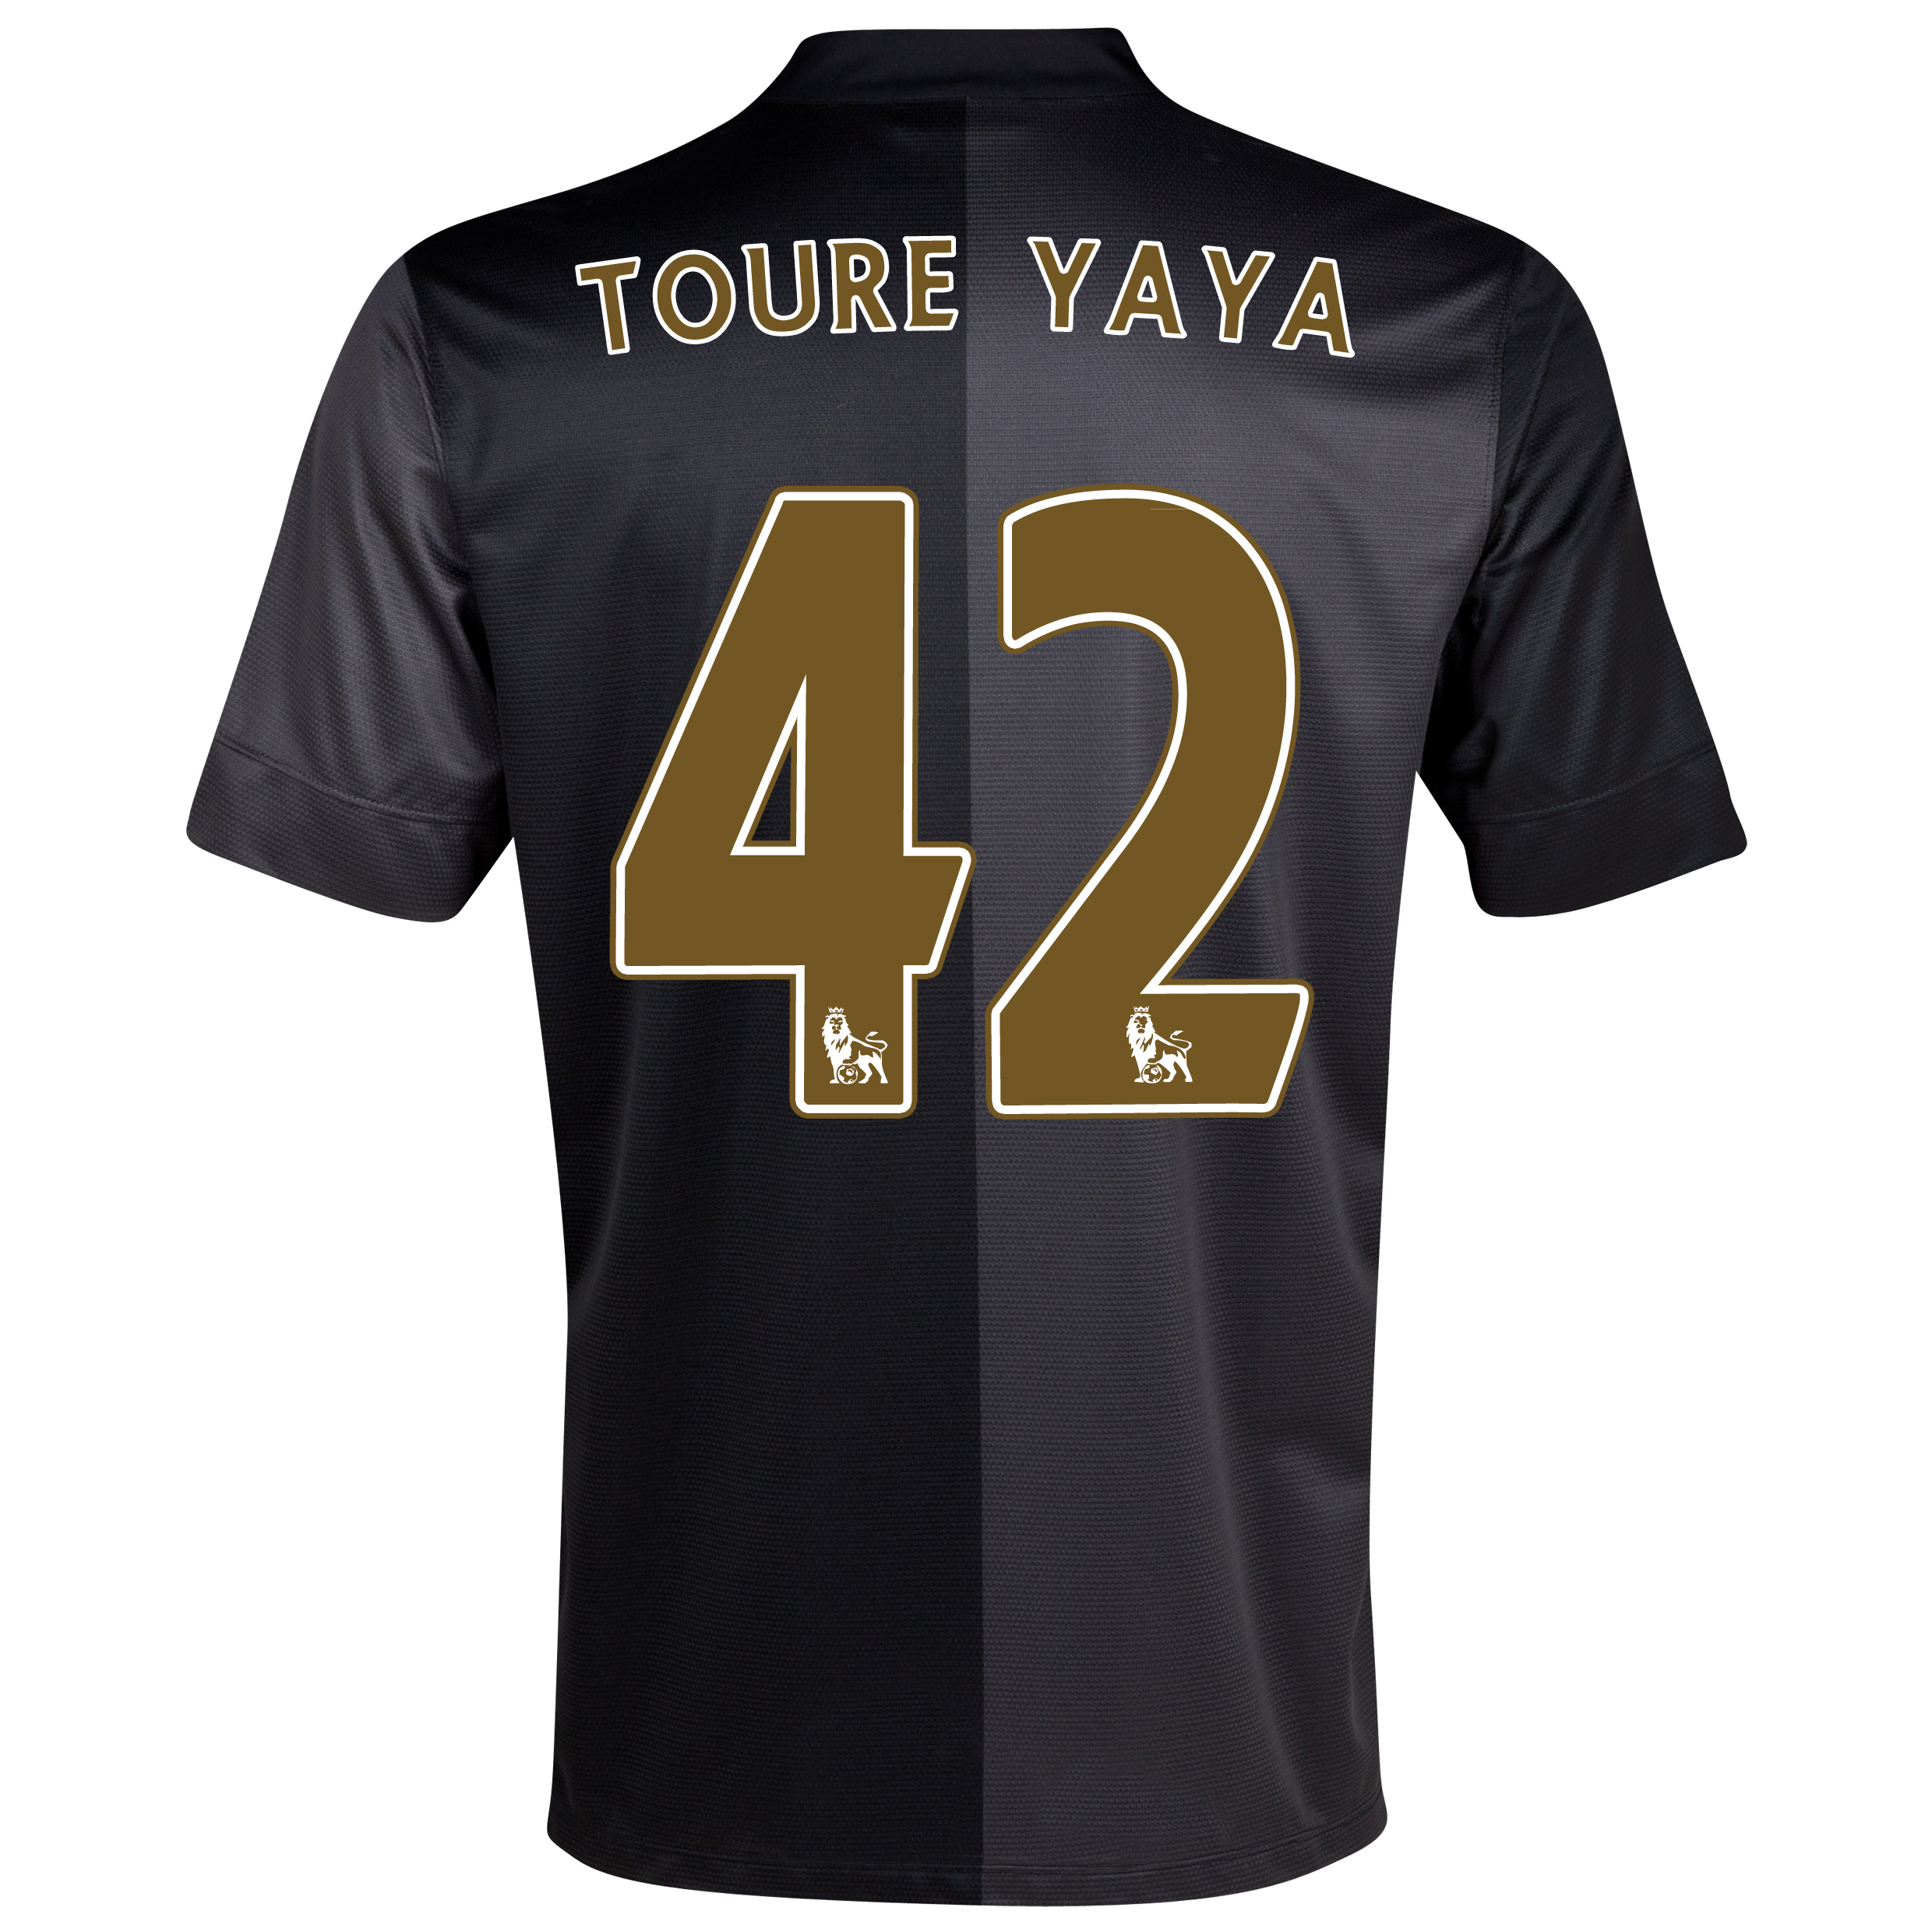 Yaya Toure hero shirts